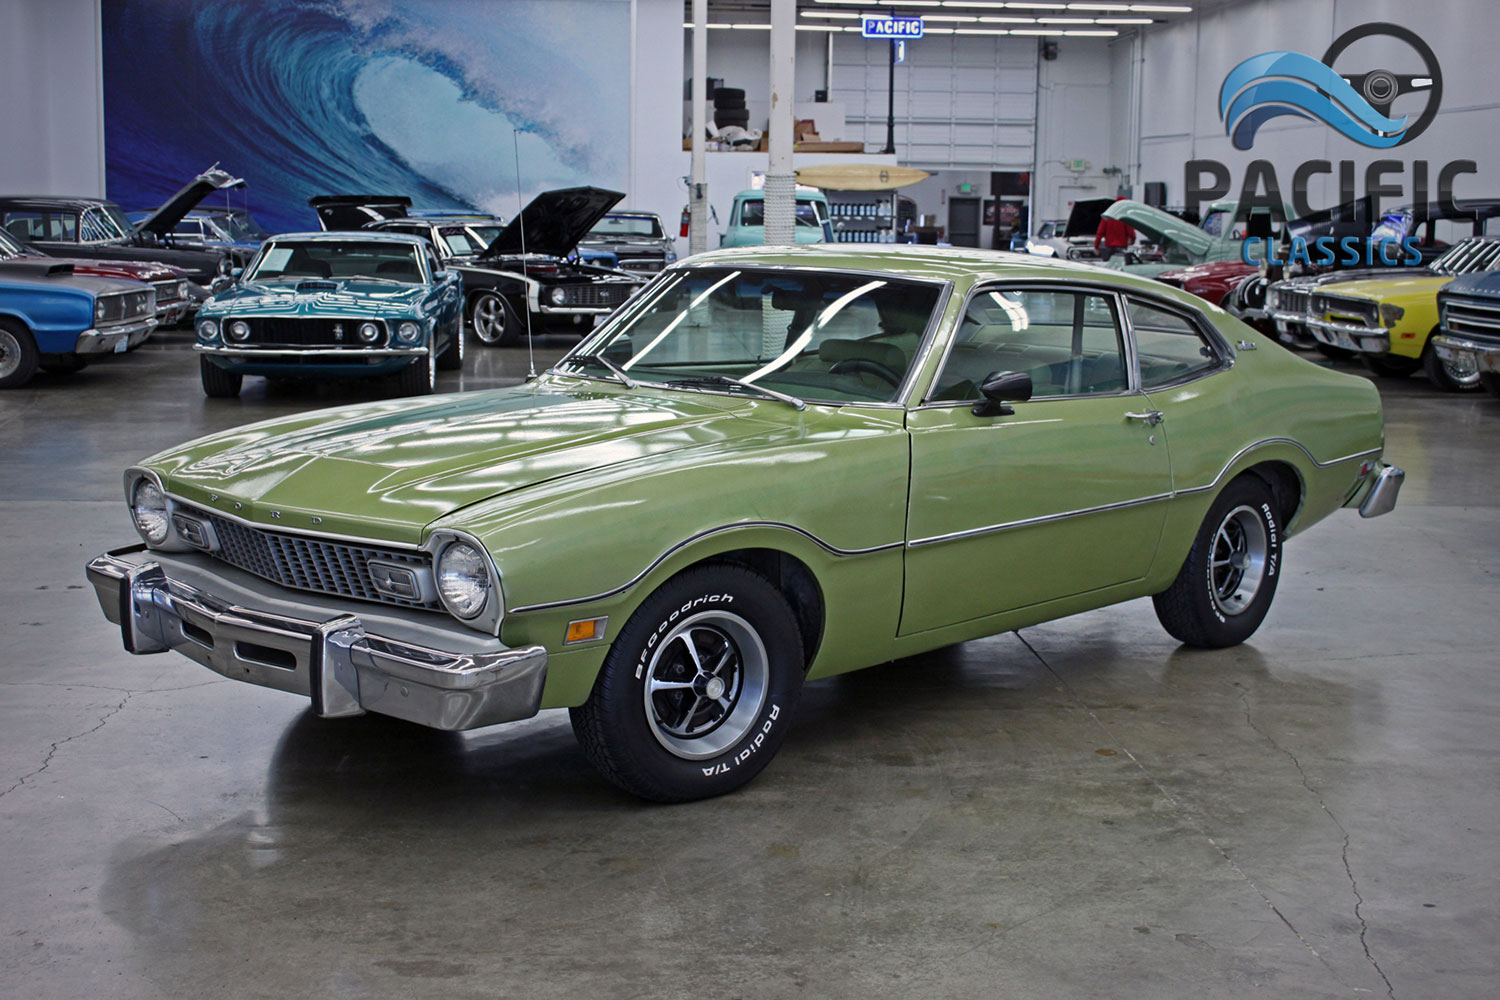 1975 Ford Maverick Pacific Classics